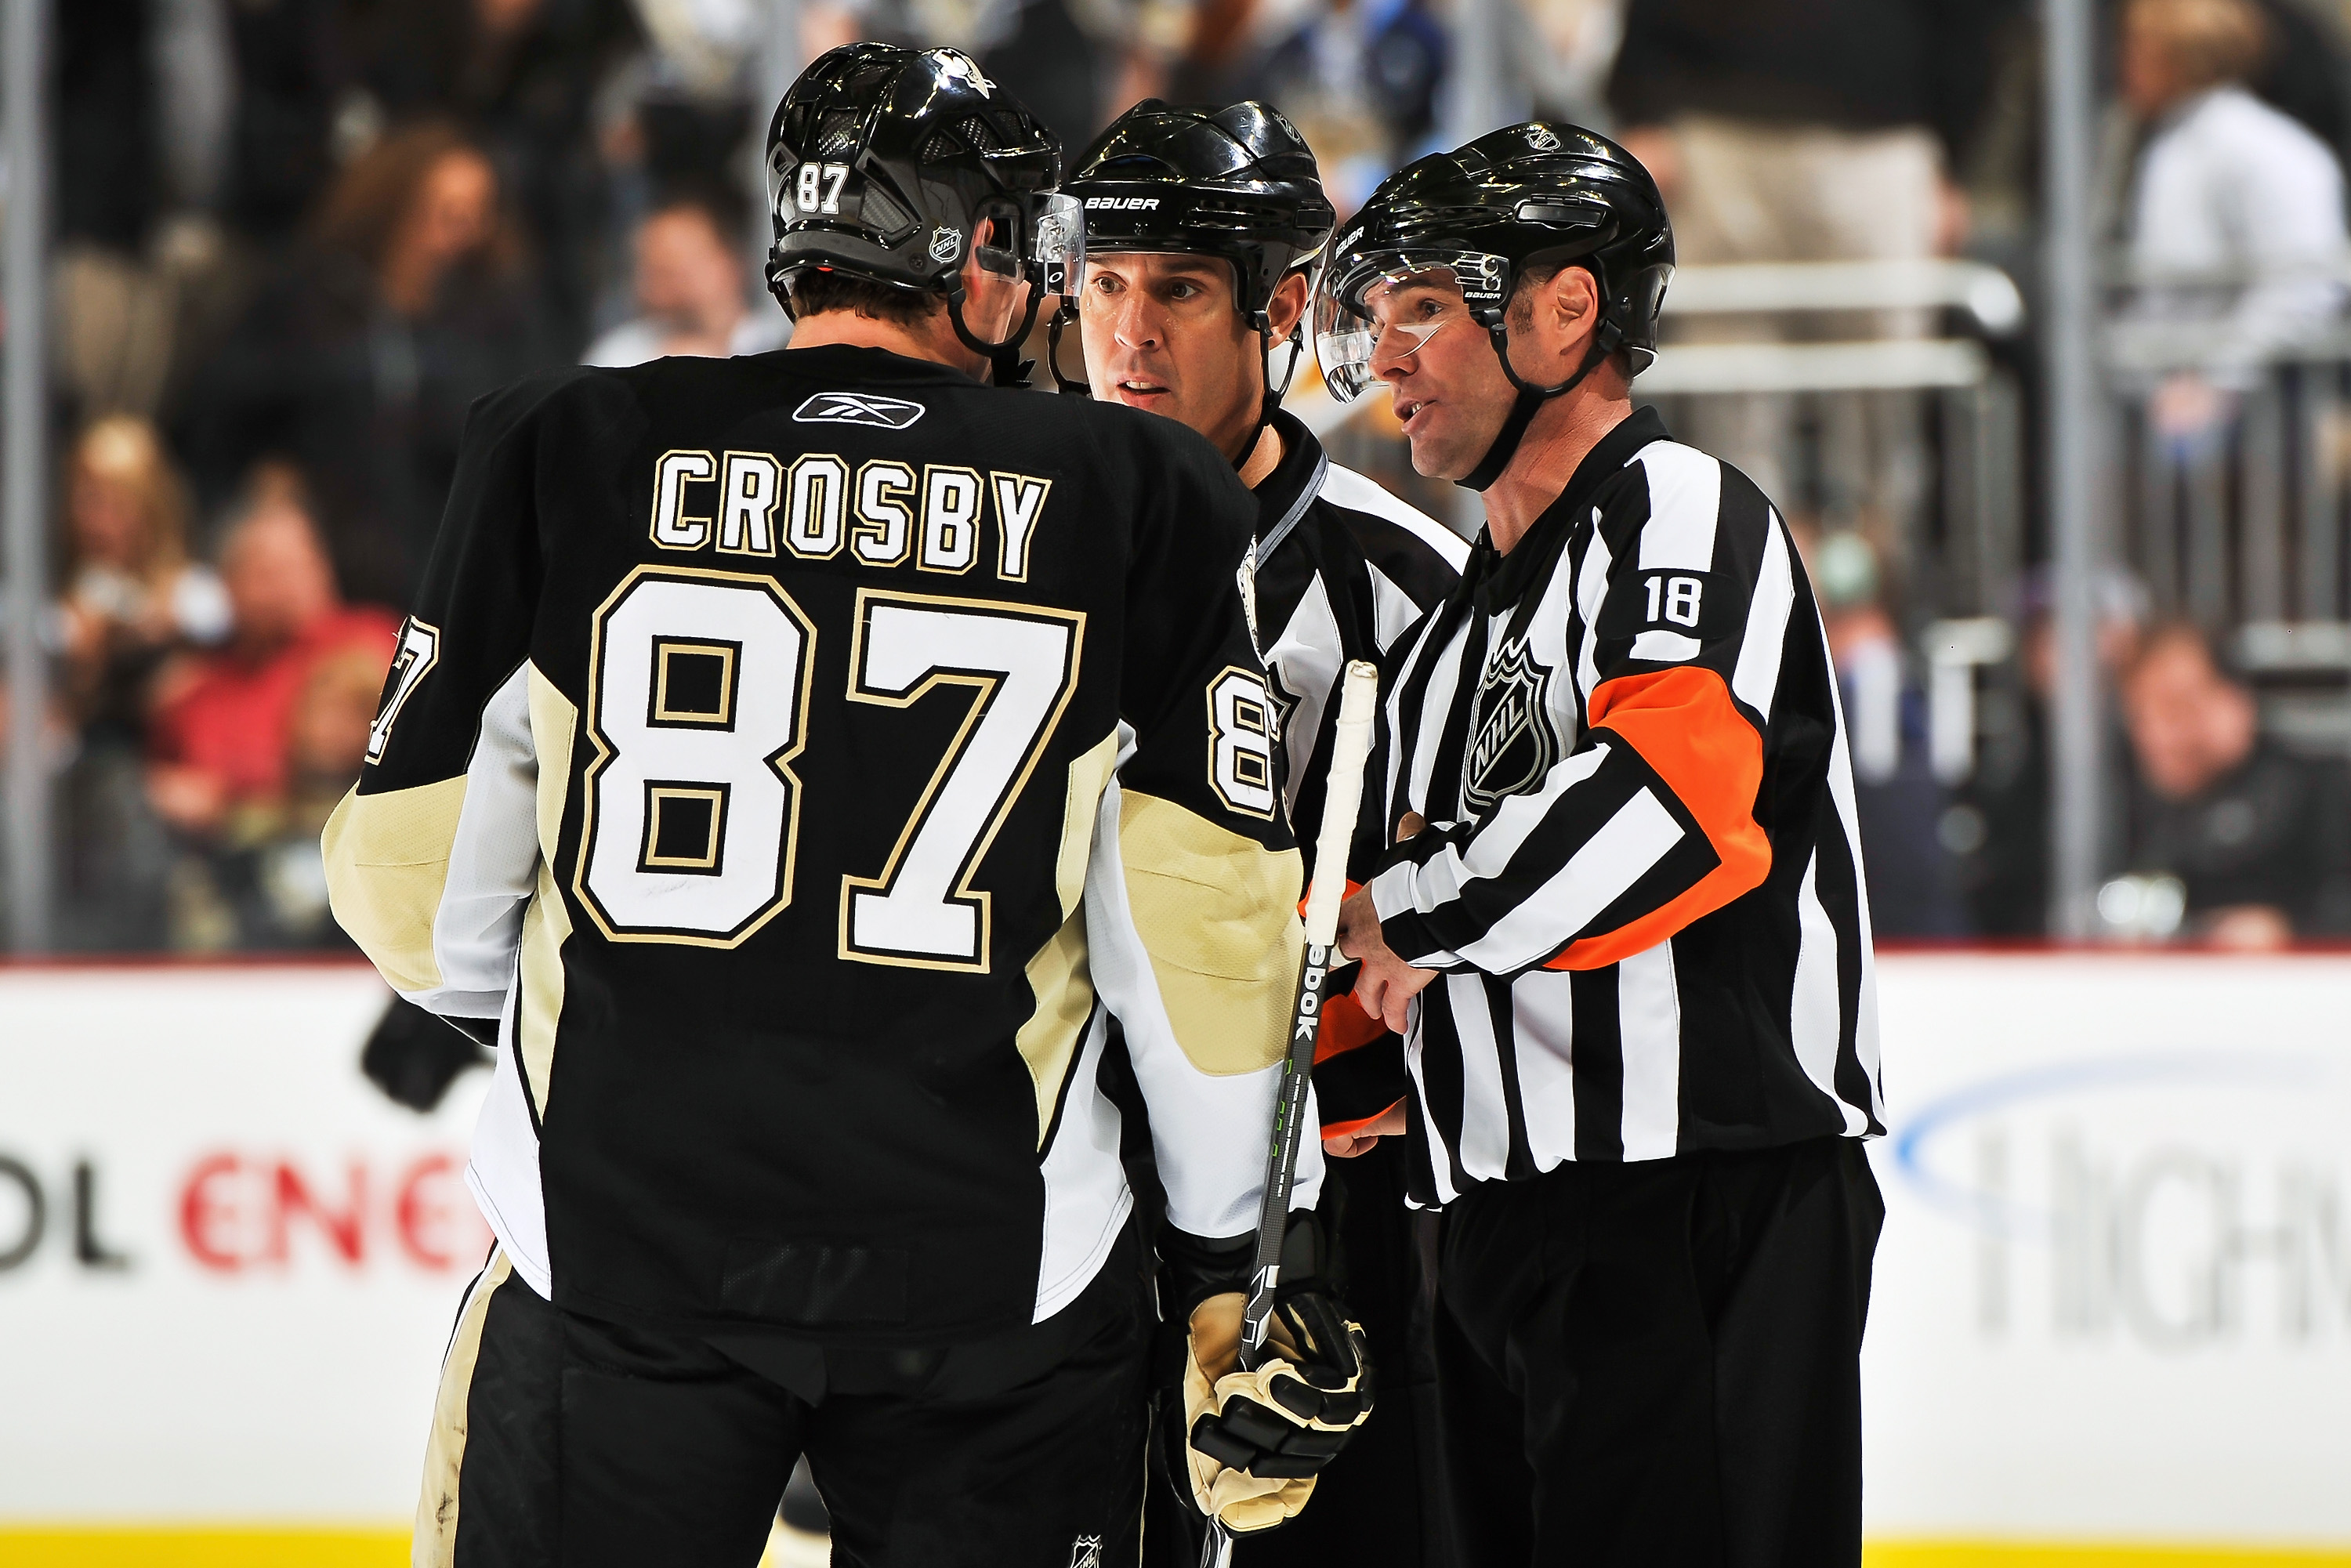 PITTSBURGH - NOVEMBER 19:  Sidney Crosby #87 of the Pittsburgh Penguins talks with officials Tony Sericolo #84 and Greg Kimmerly #18 during a game against the Carolina Hurricanes on November 19, 2010 at Consol Energy Center in Pittsburgh, Pennsylvania.  (